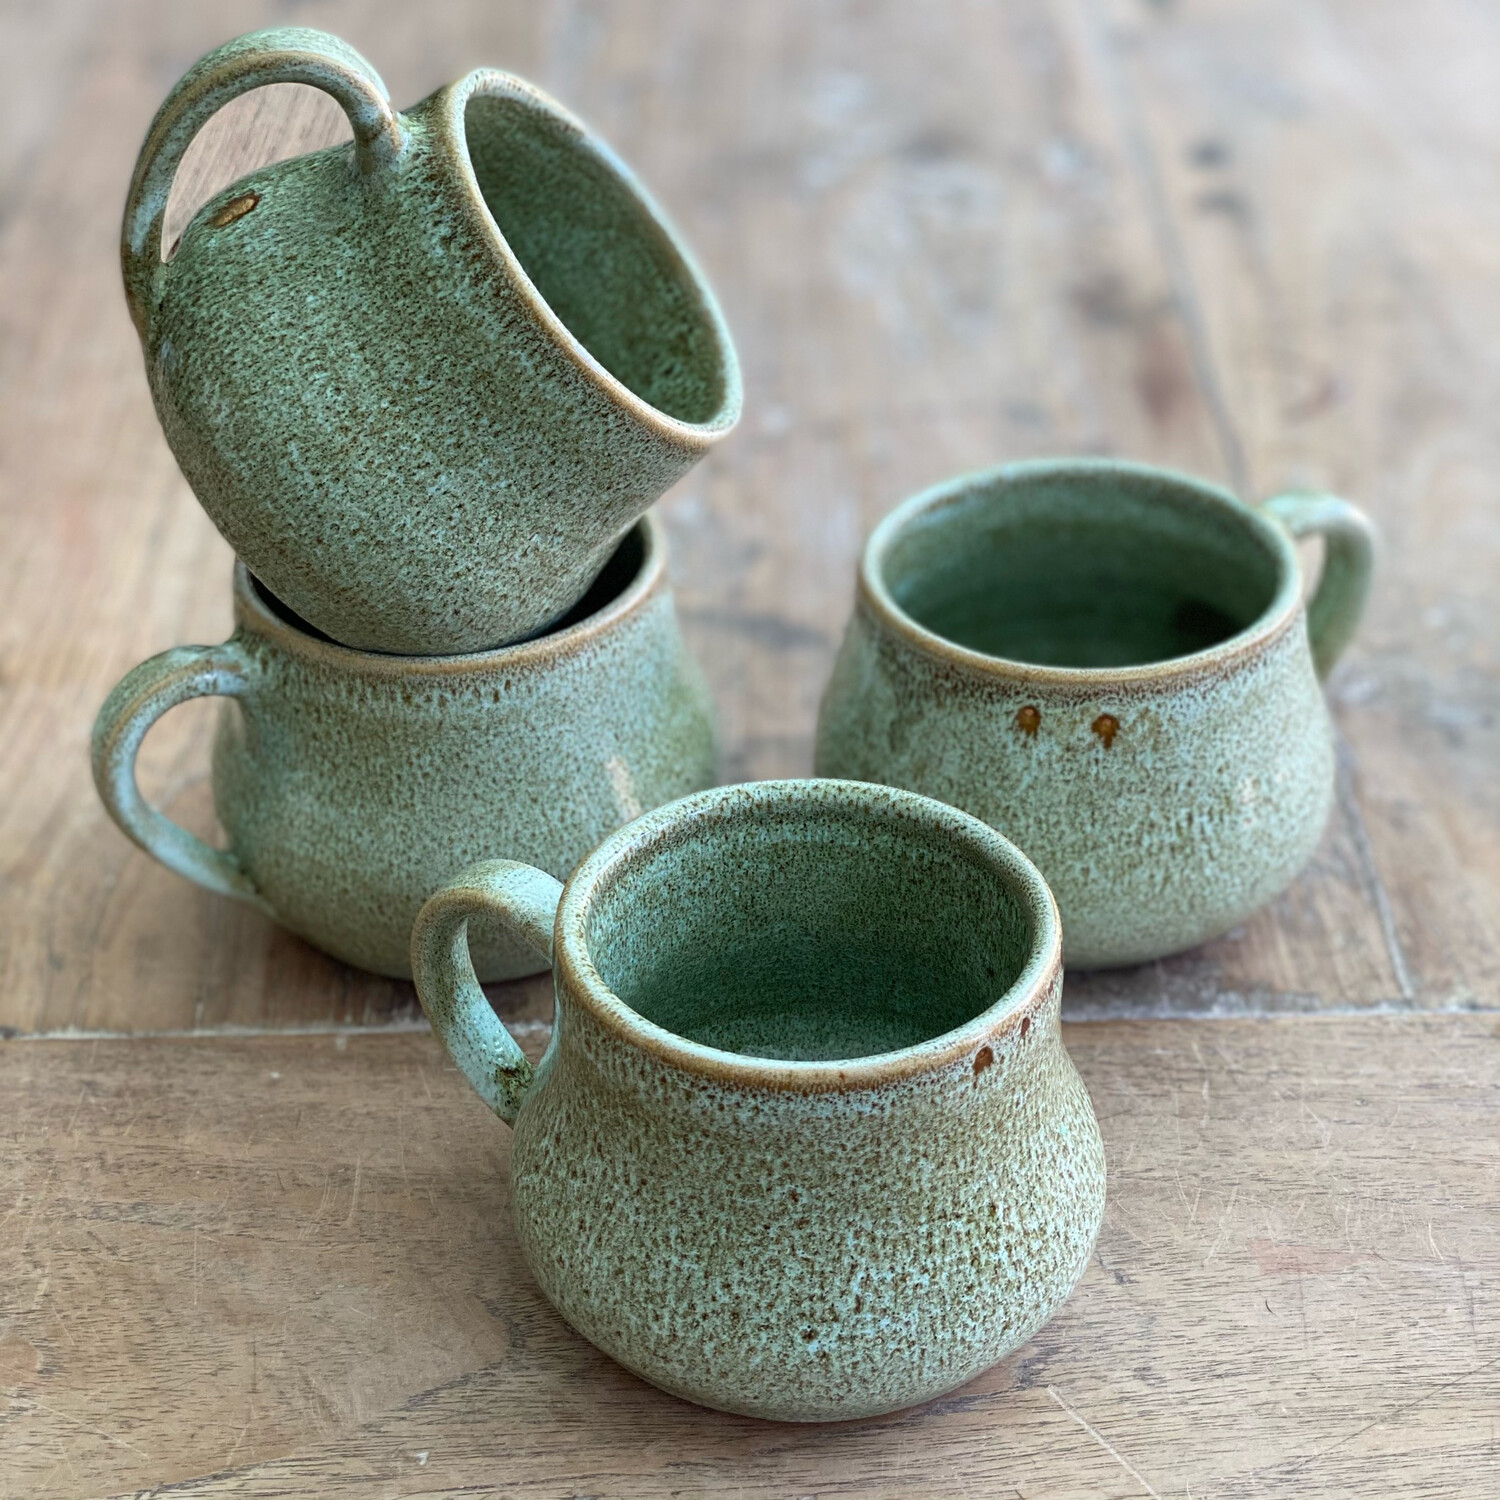 Set Of 4 11oz Green/Brown Mugs 2